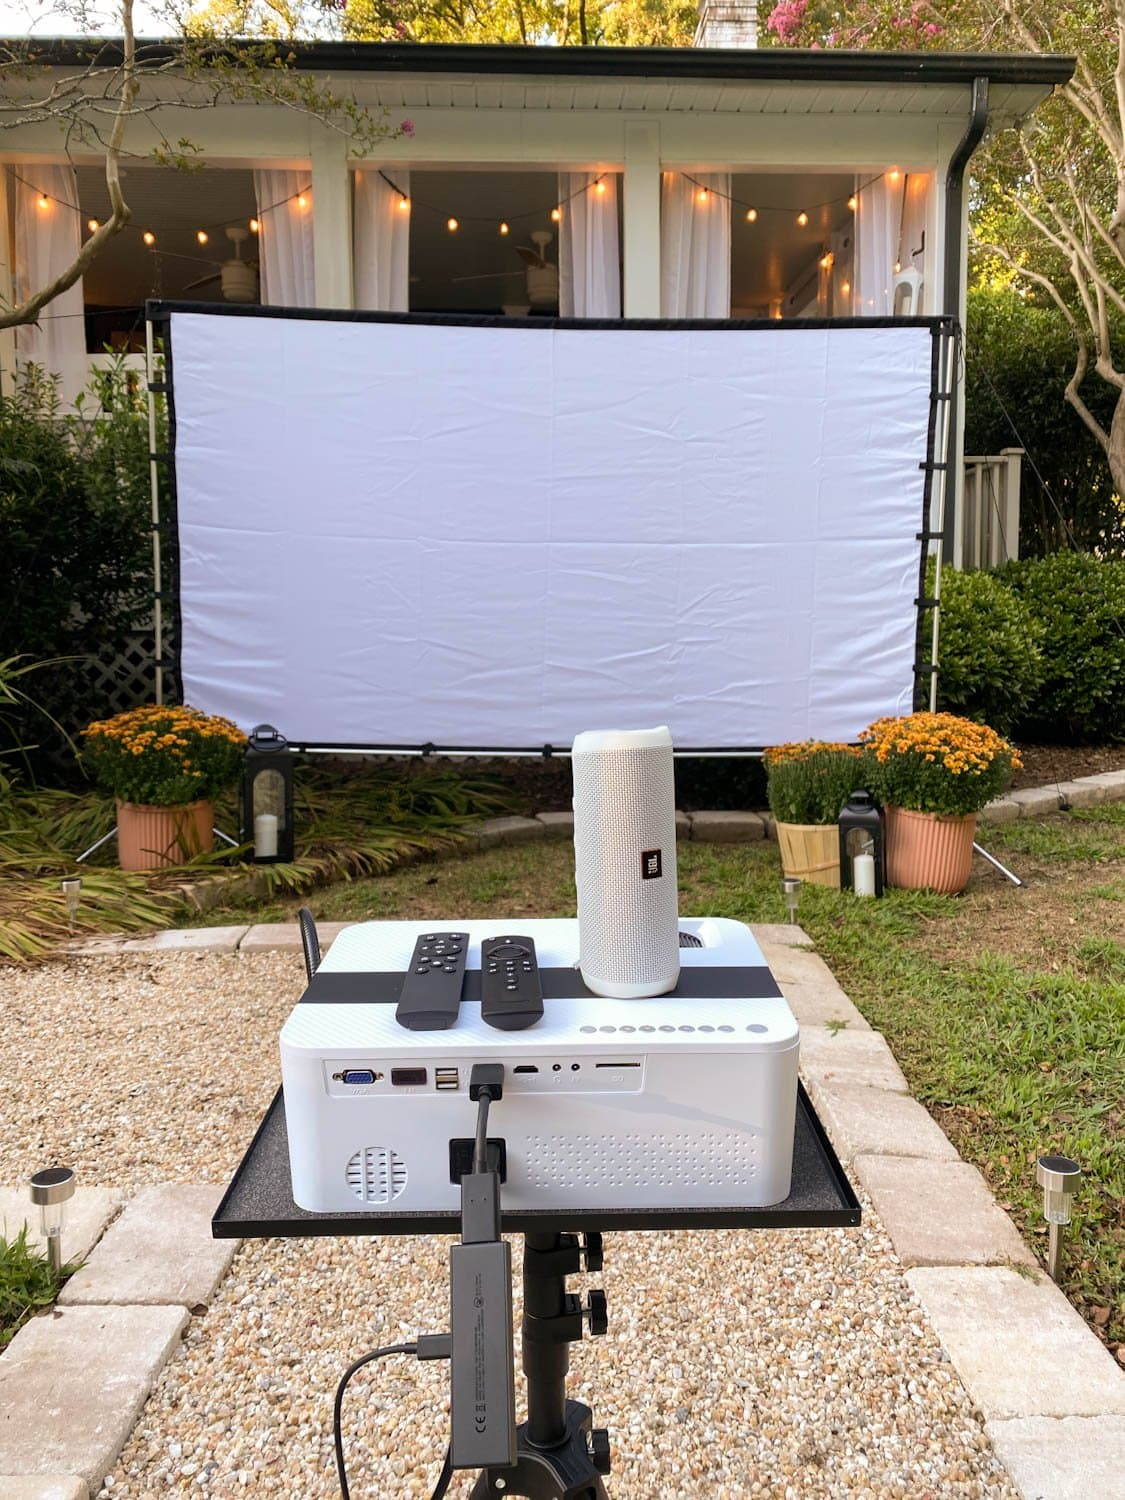 How to set up a backyard movie night with recommended projector, outdoor projector screen, movie streaming device, and bluetooth speaker